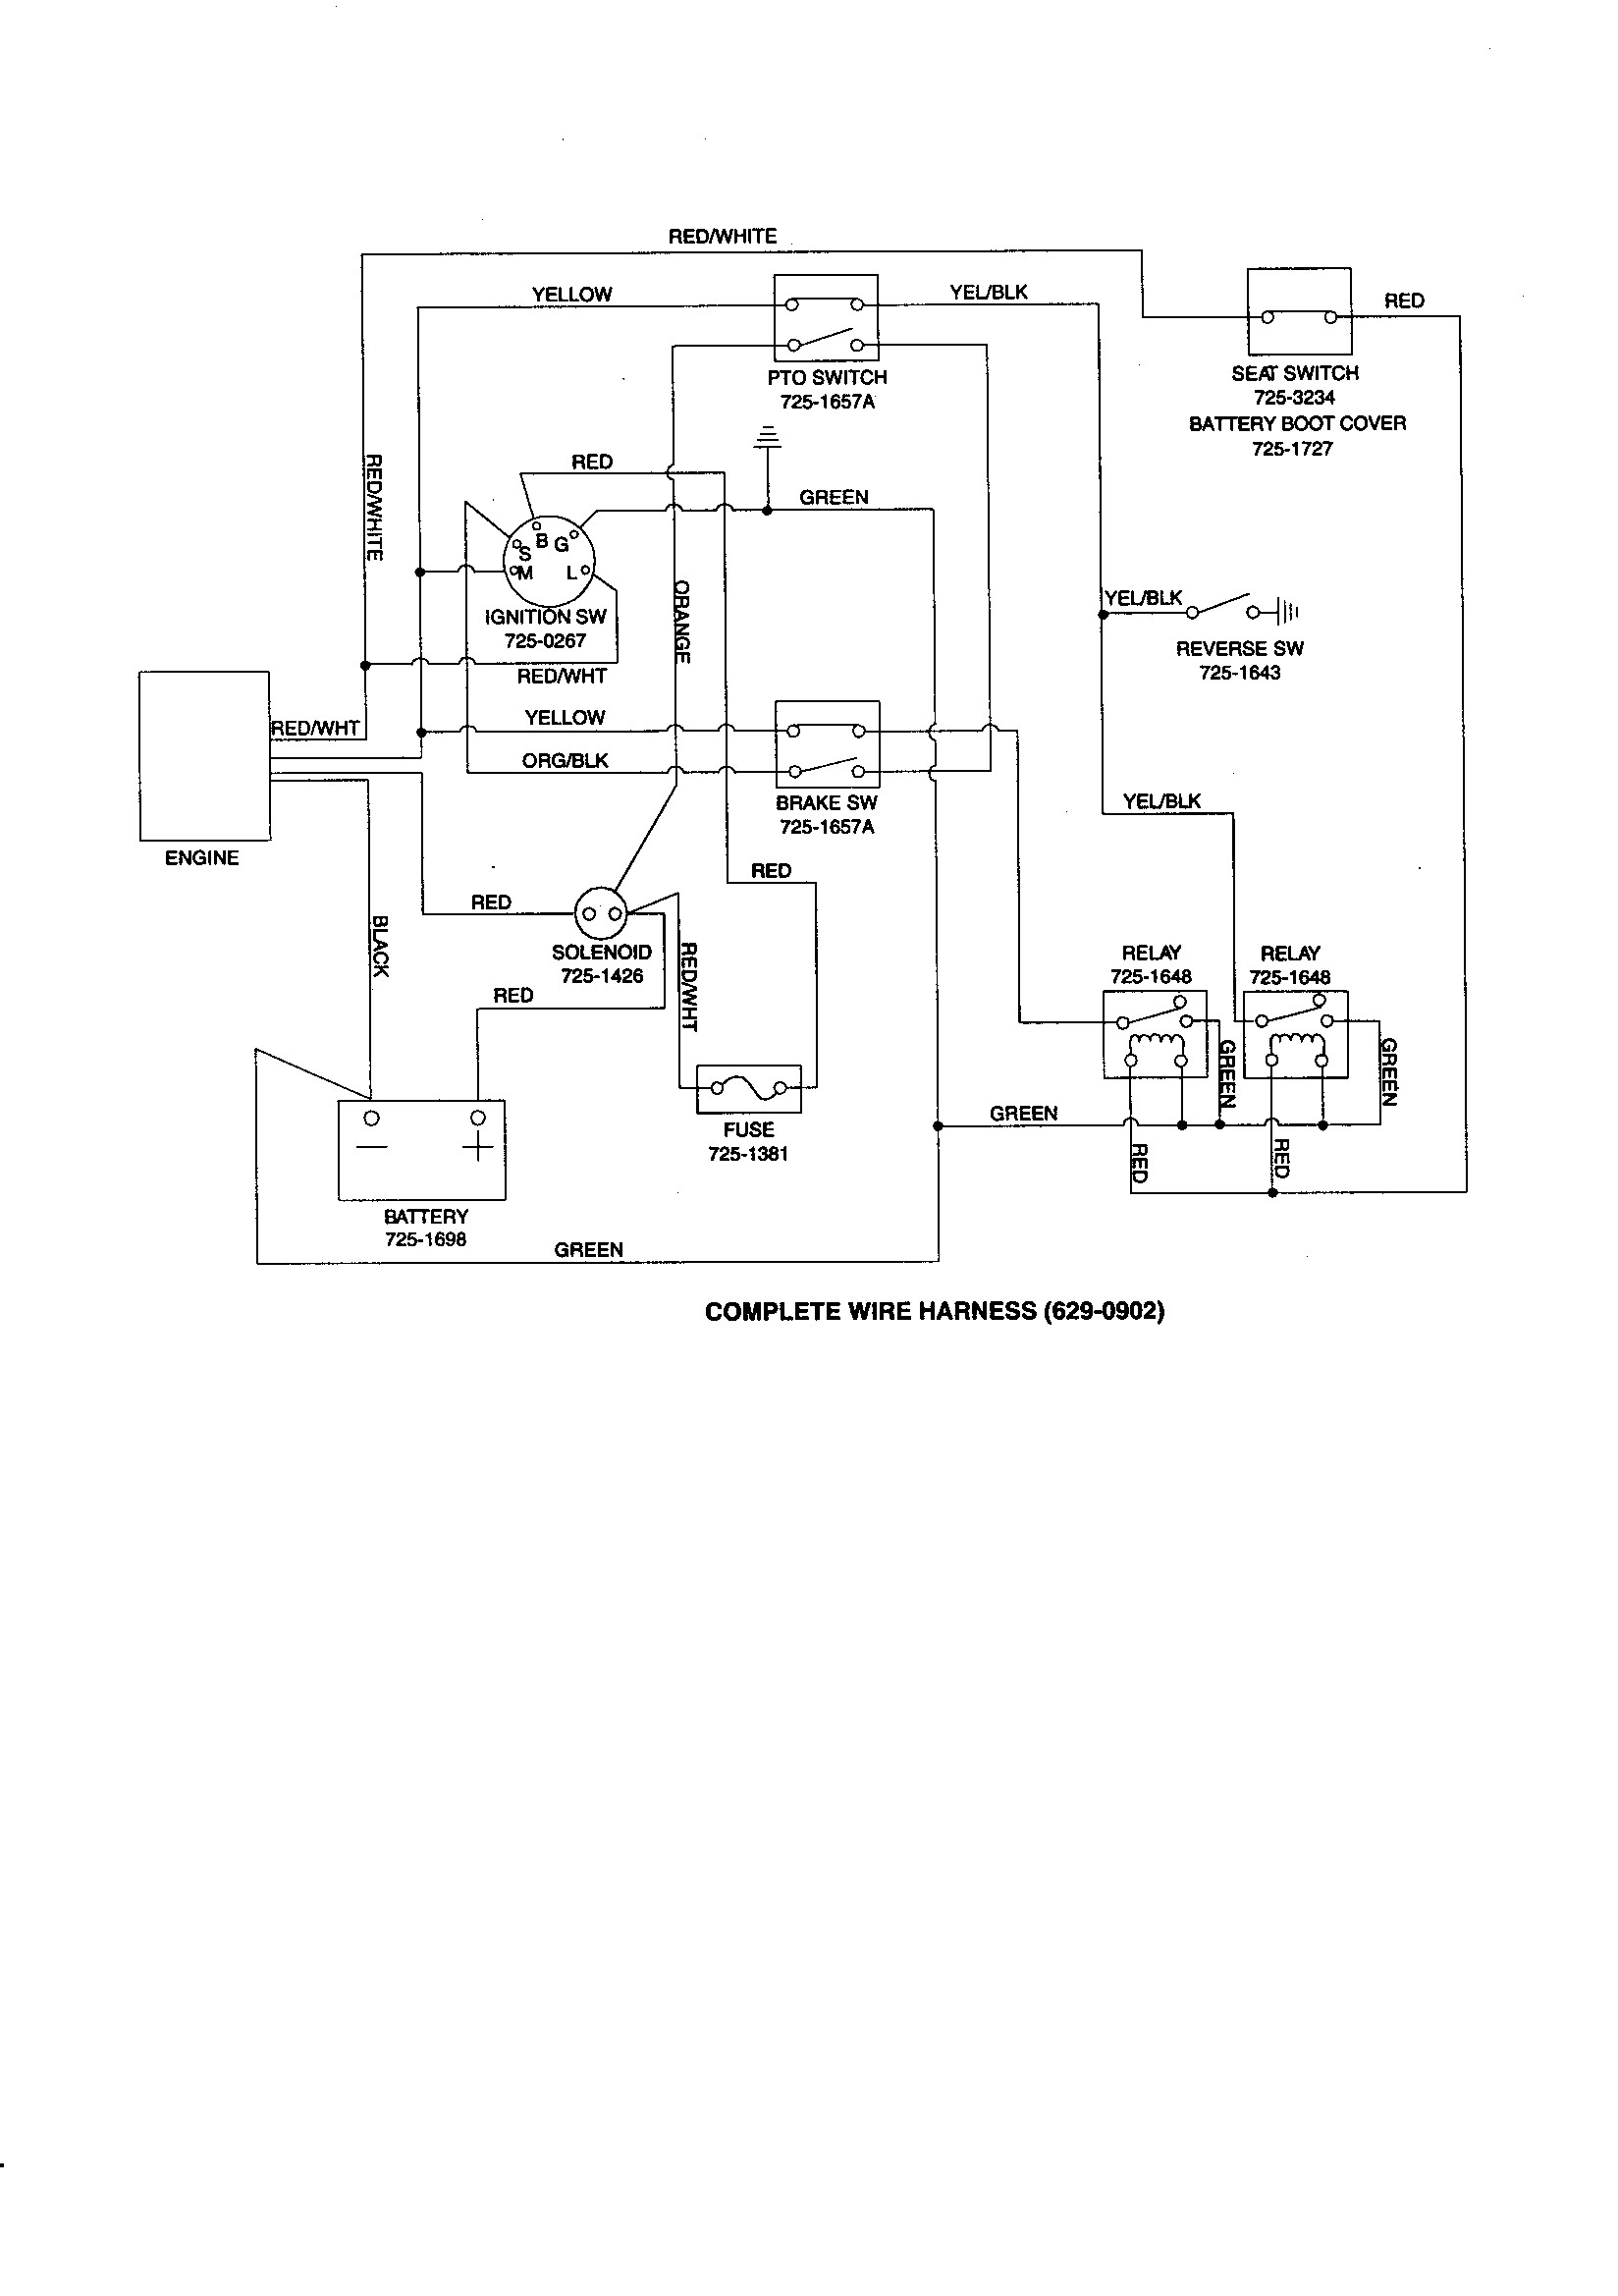 hight resolution of wiring diagram for craftsman 917 276922 riding lawn mower wiring wiring diagram for craftsman 917 276922 riding lawn mower